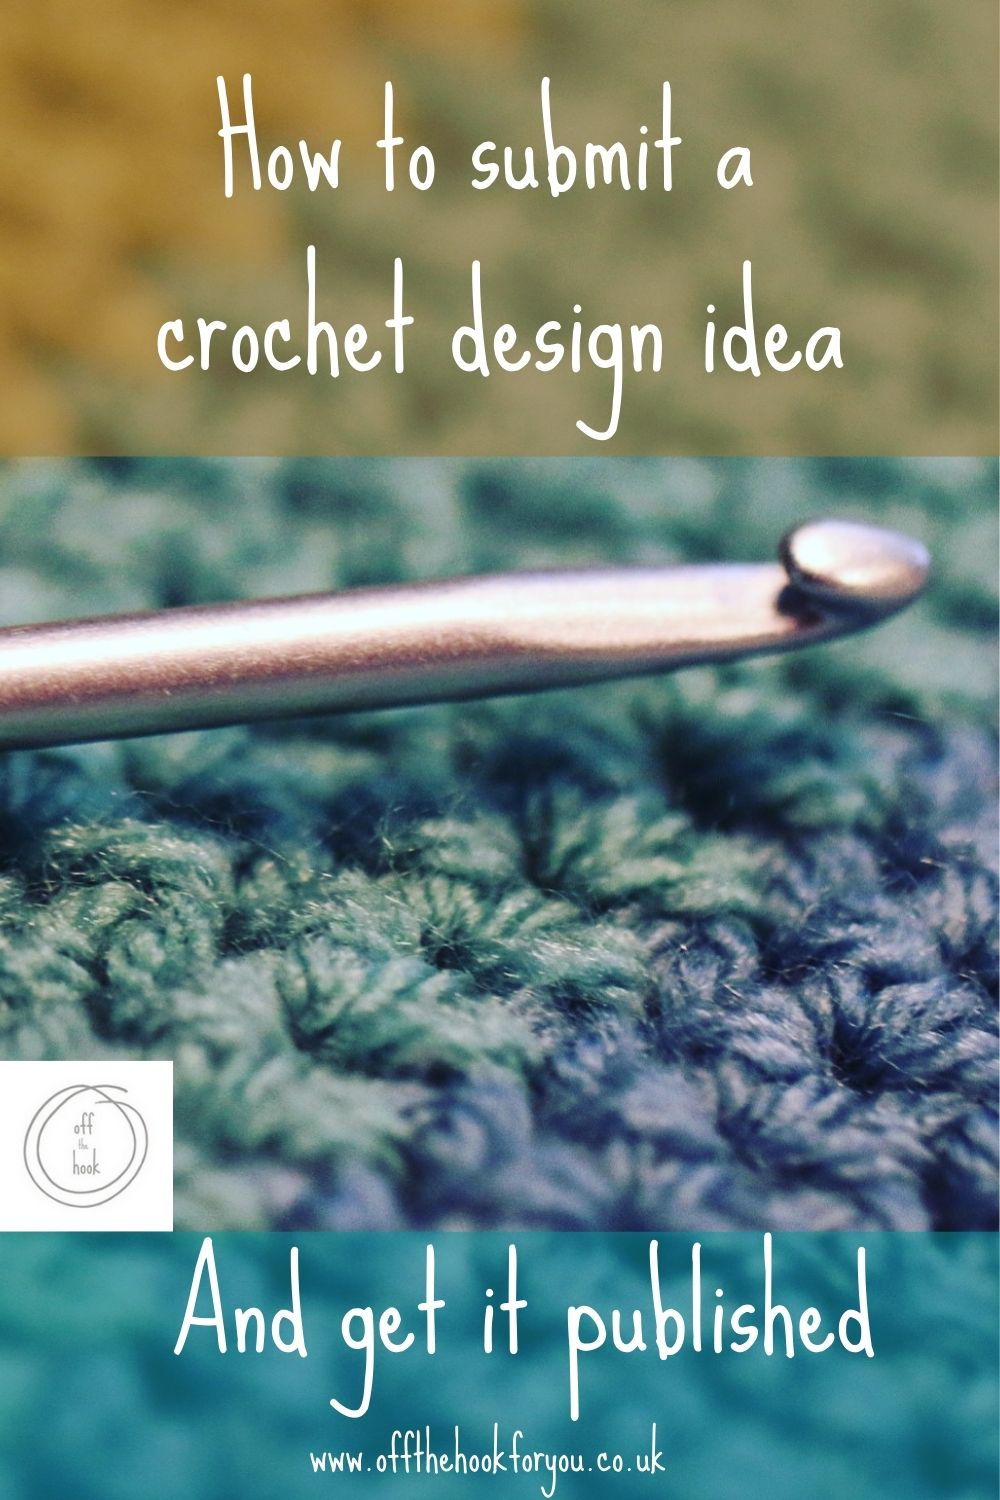 How to submit a crochet design